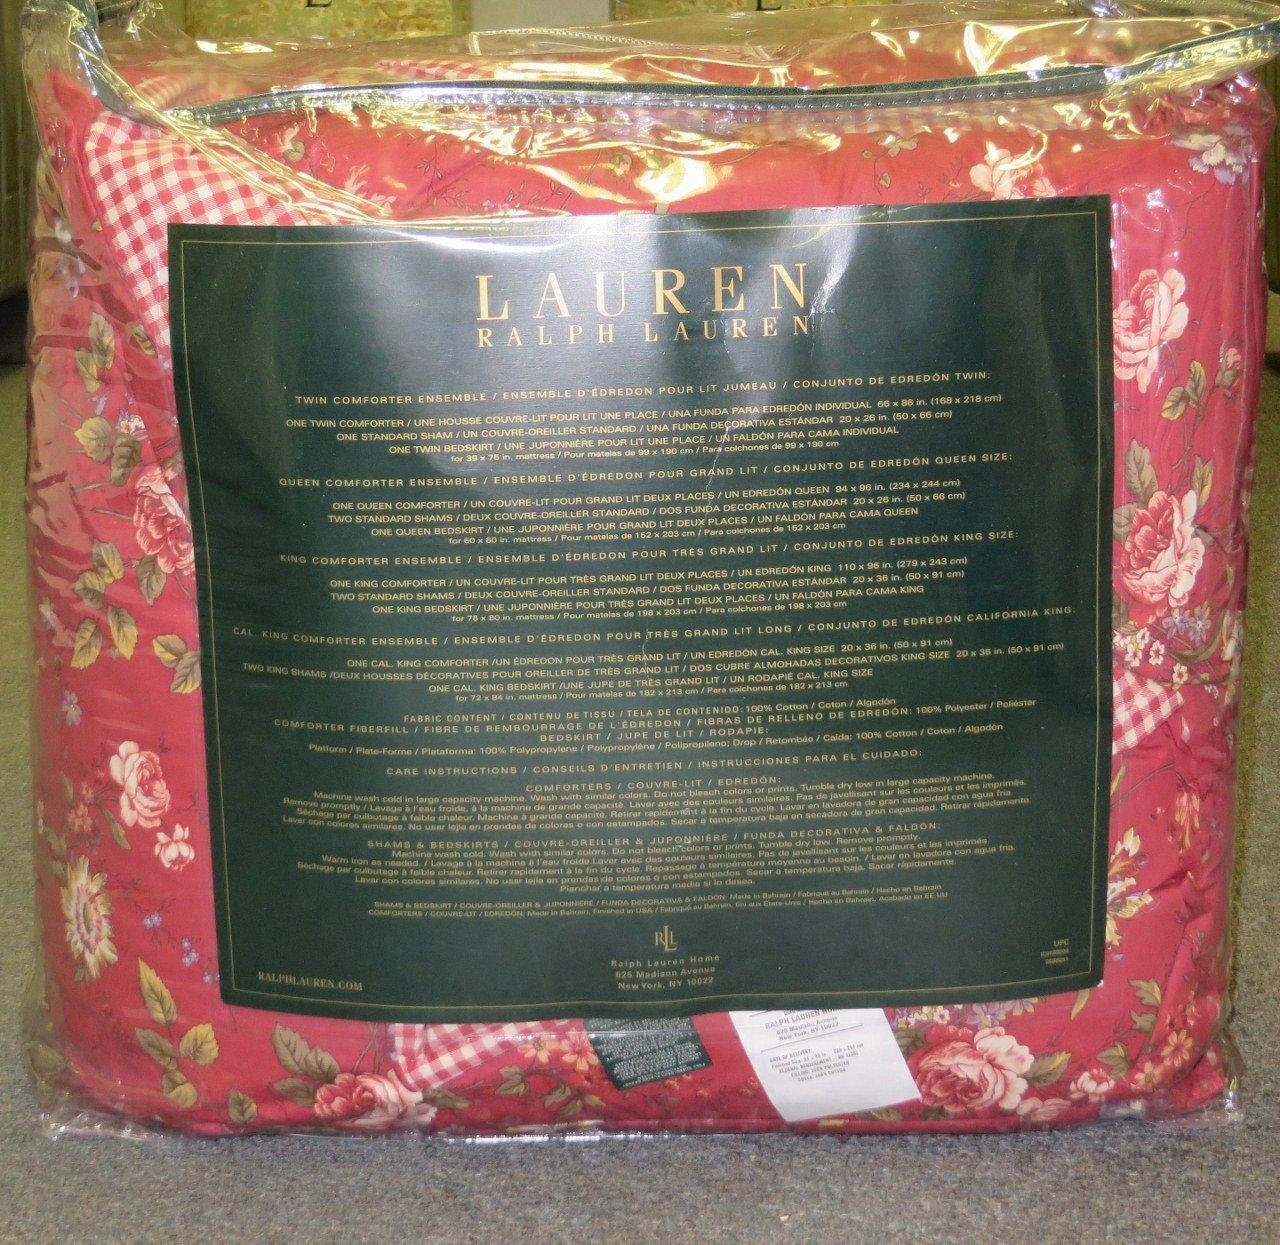 Amazon.com: Ralph Lauren Longmeadow St. Germain Red Queen Comforter 4-pc Set: Home & Kitchen